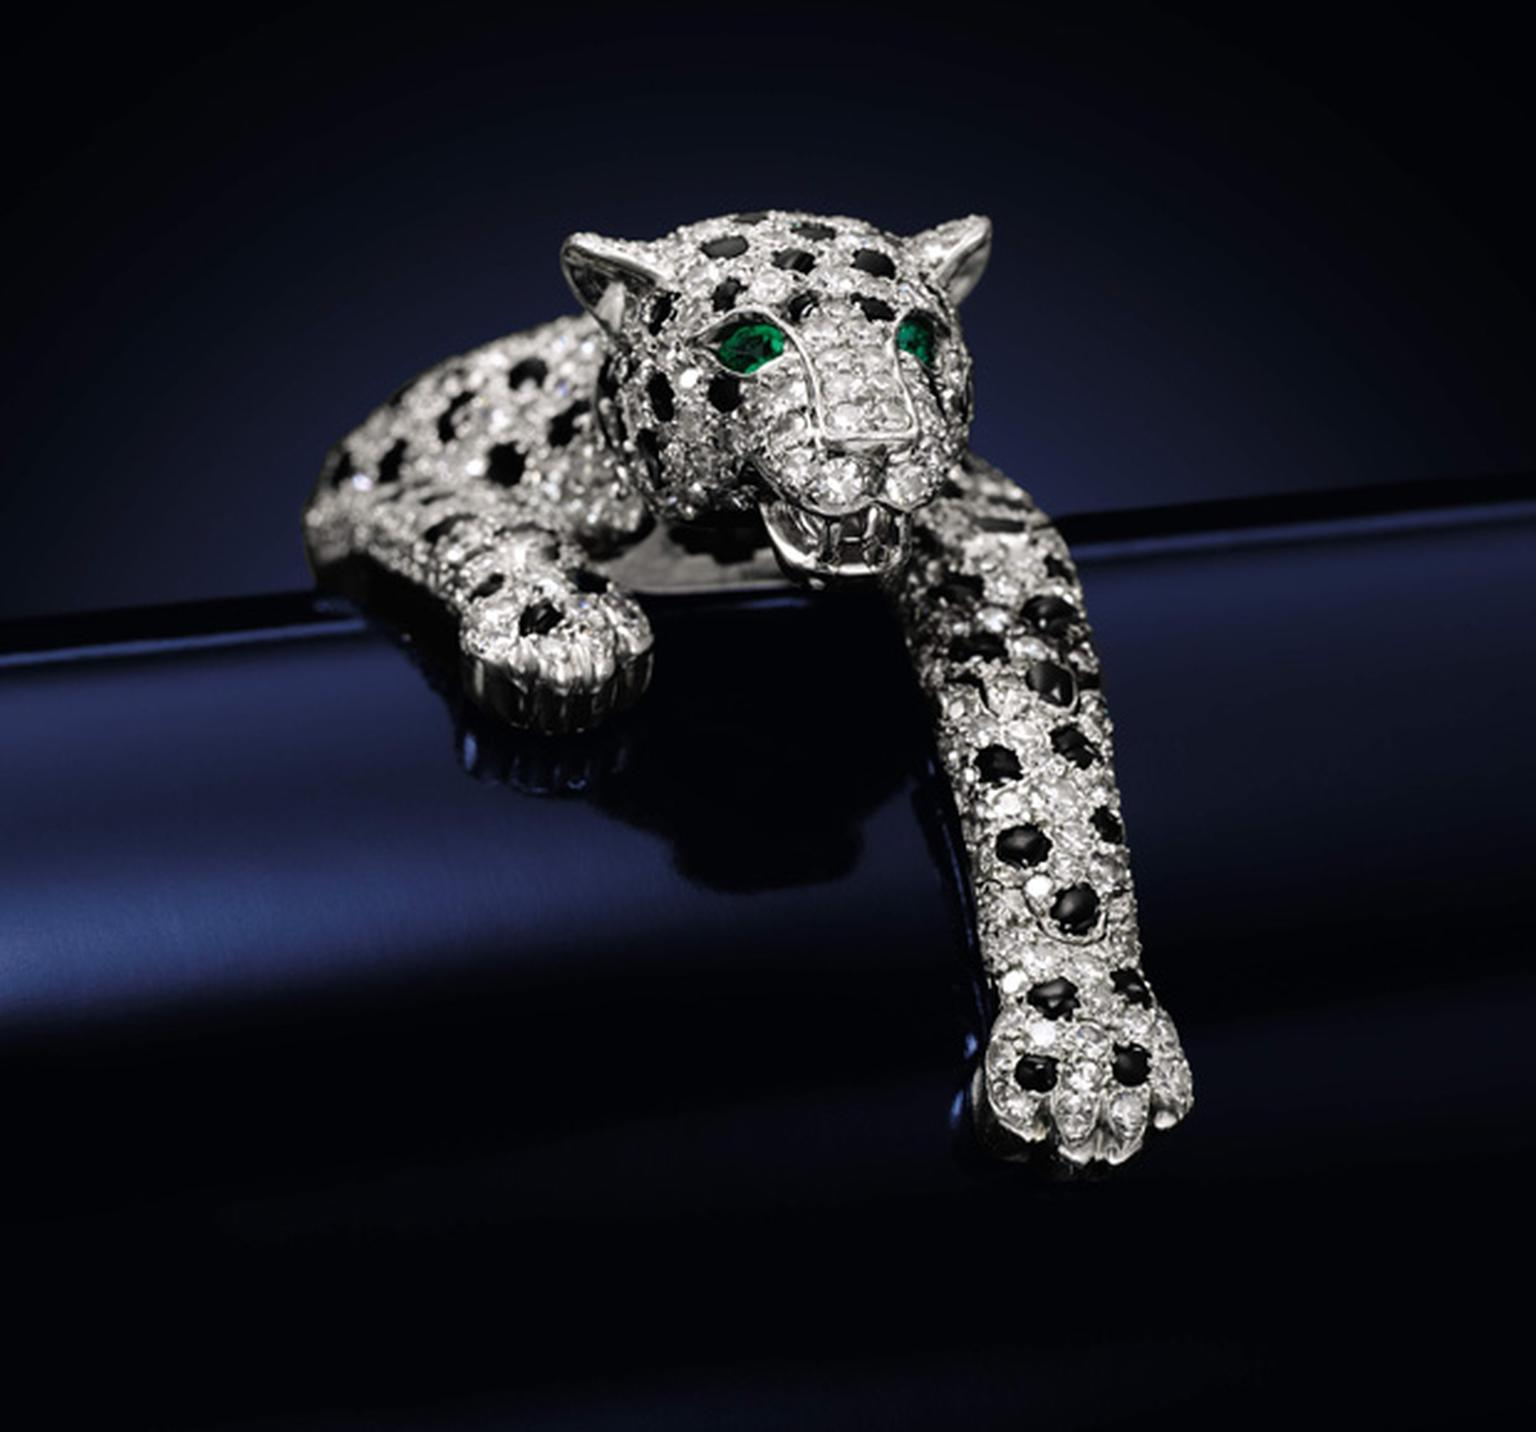 Sotheby's Duchess of Windsor Jewellery Auction Lot-19 Cartier Panther Bracelet